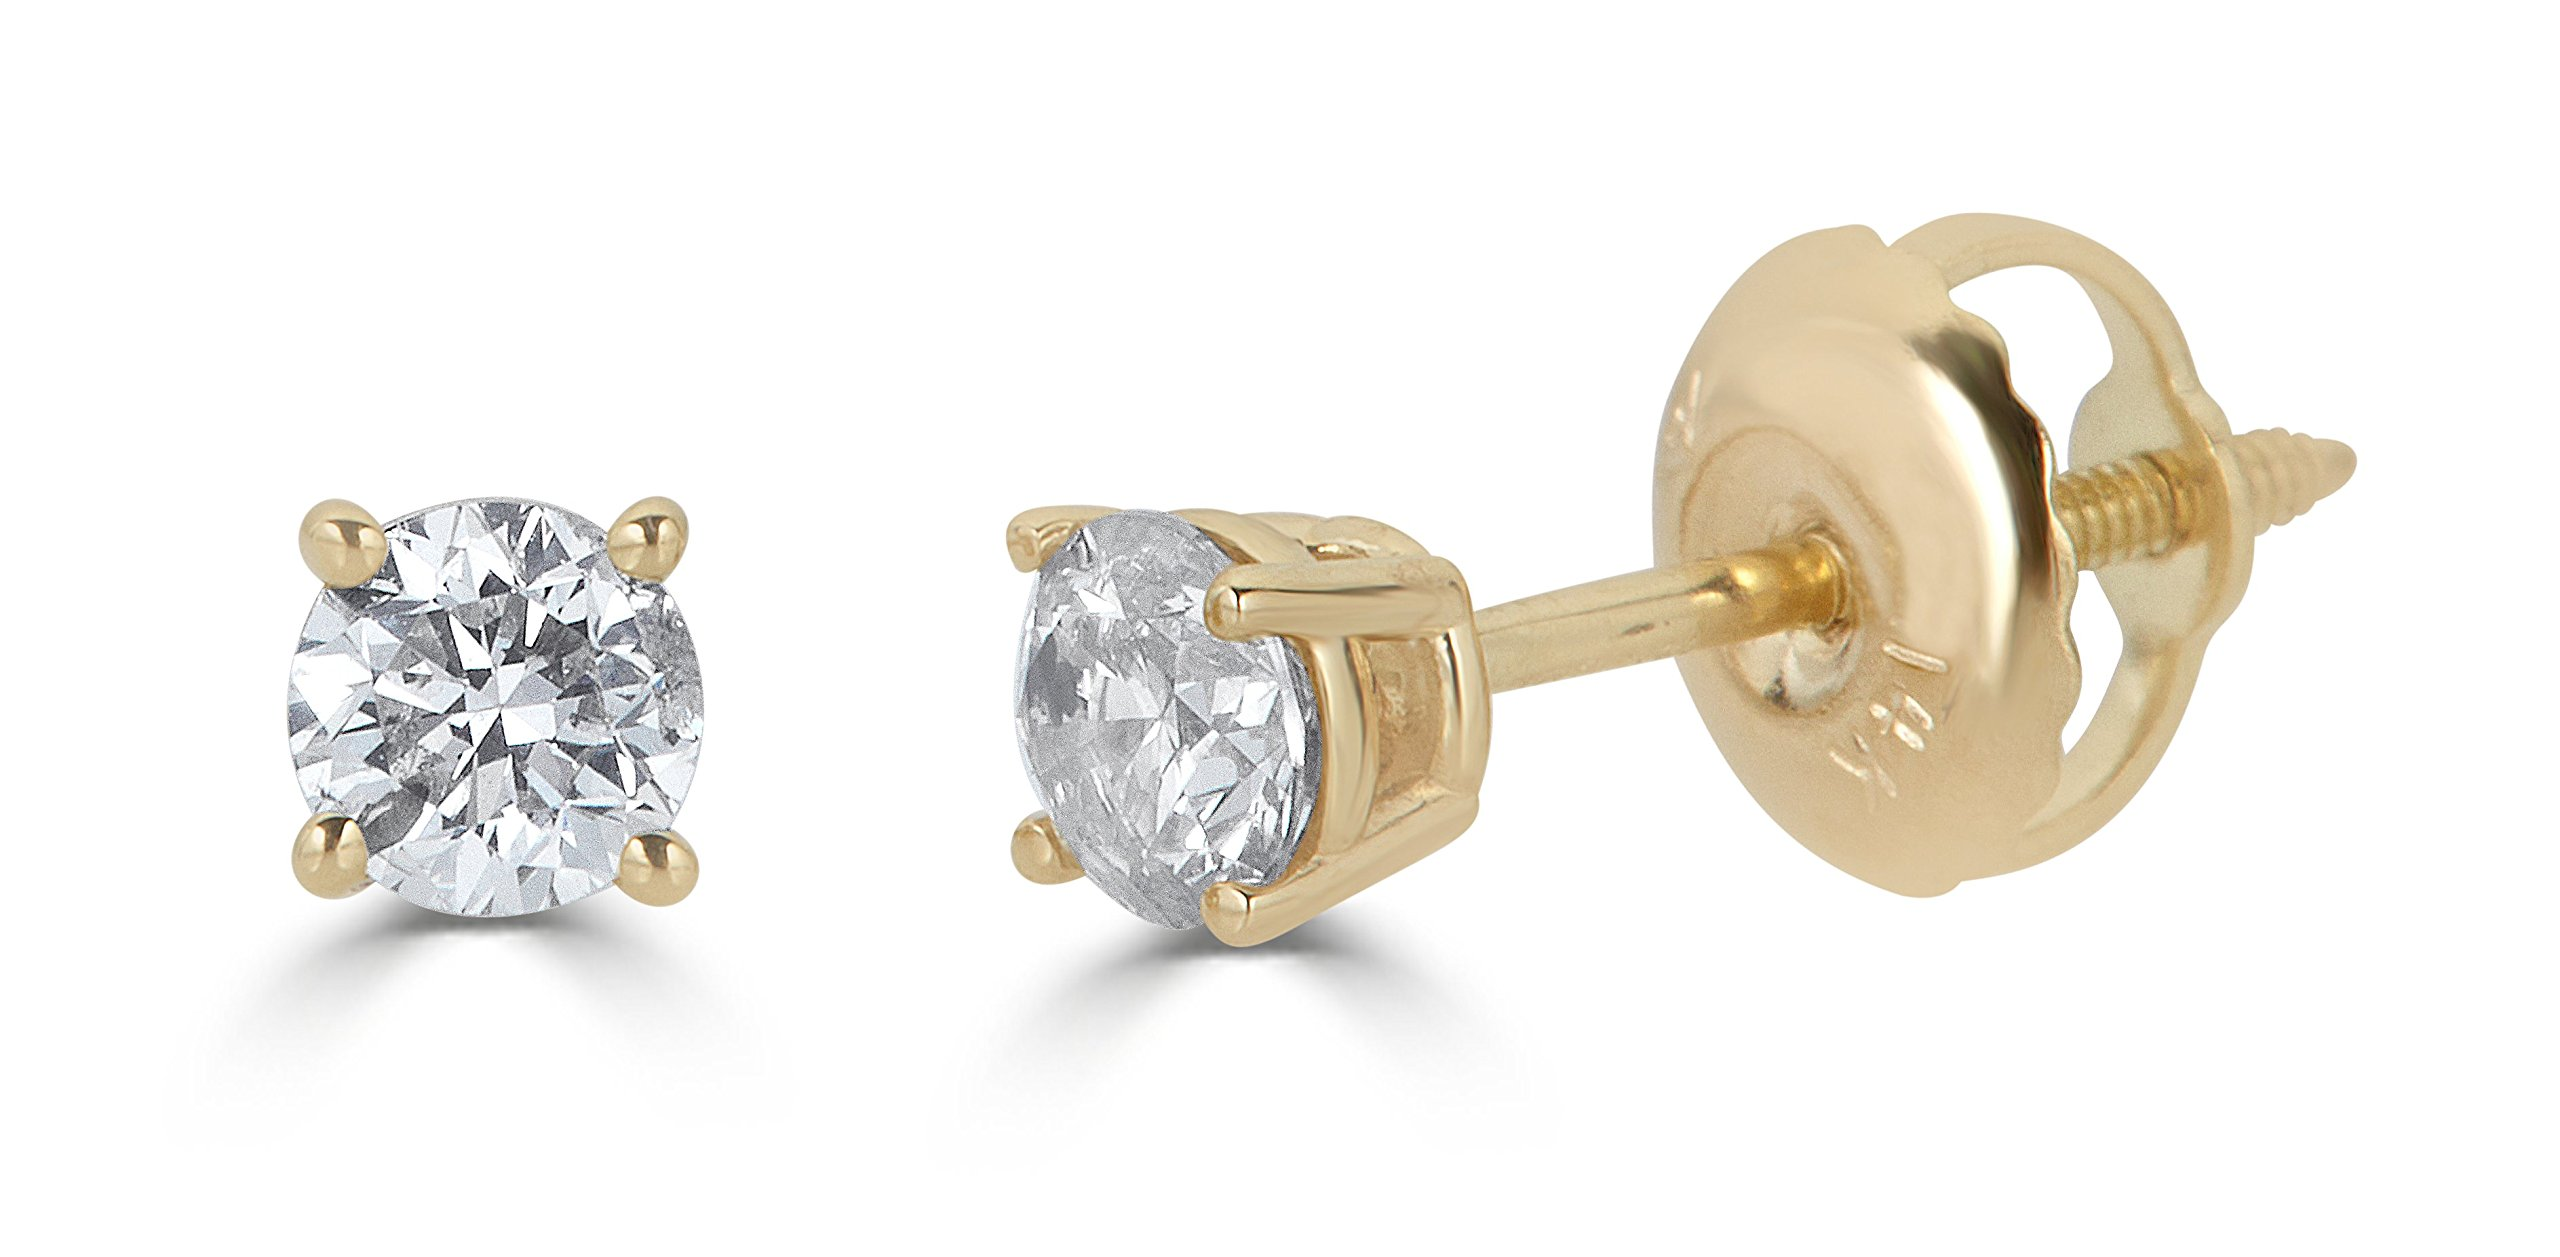 14k Yellow Gold Round-Cut Diamond Stud Earrings (1/3cttw, J-K Color, I2-I3 Clarity)